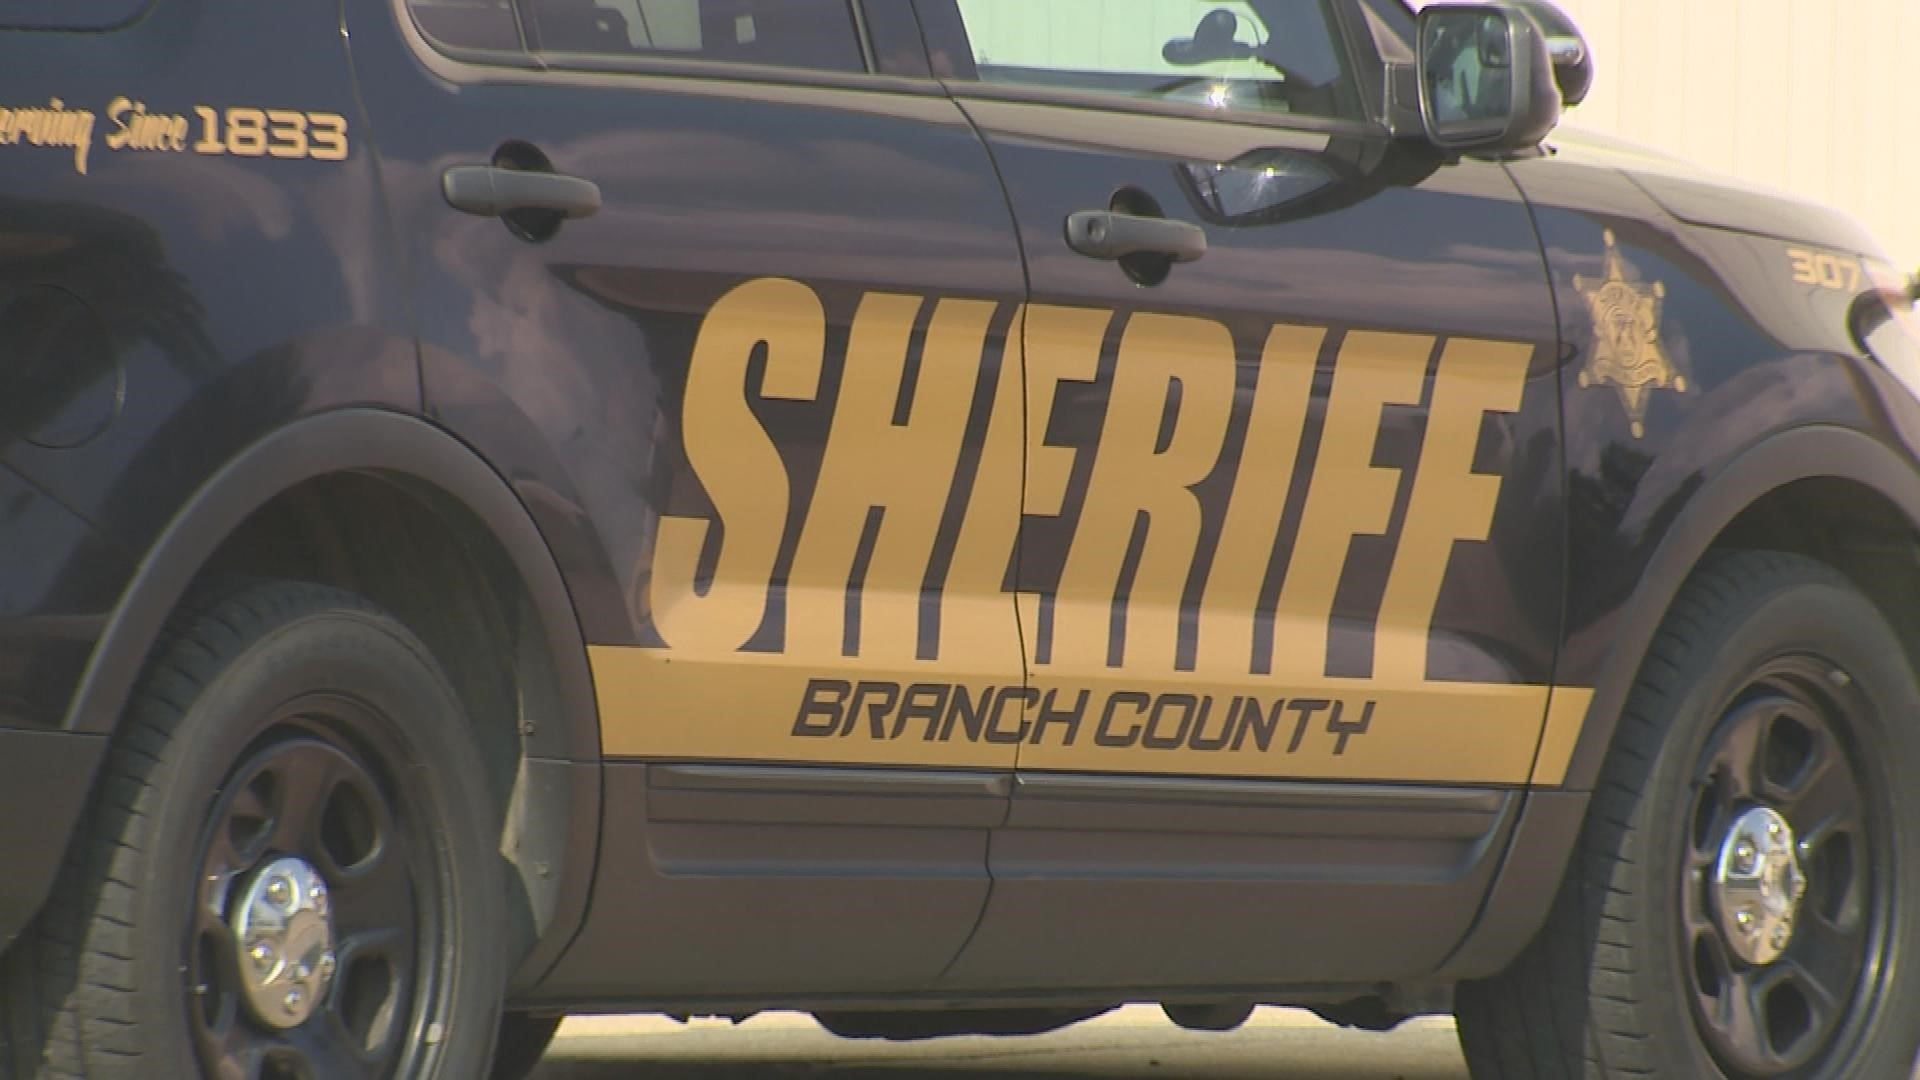 generic branch county sheriff's office_1534207824277.jpg.jpg